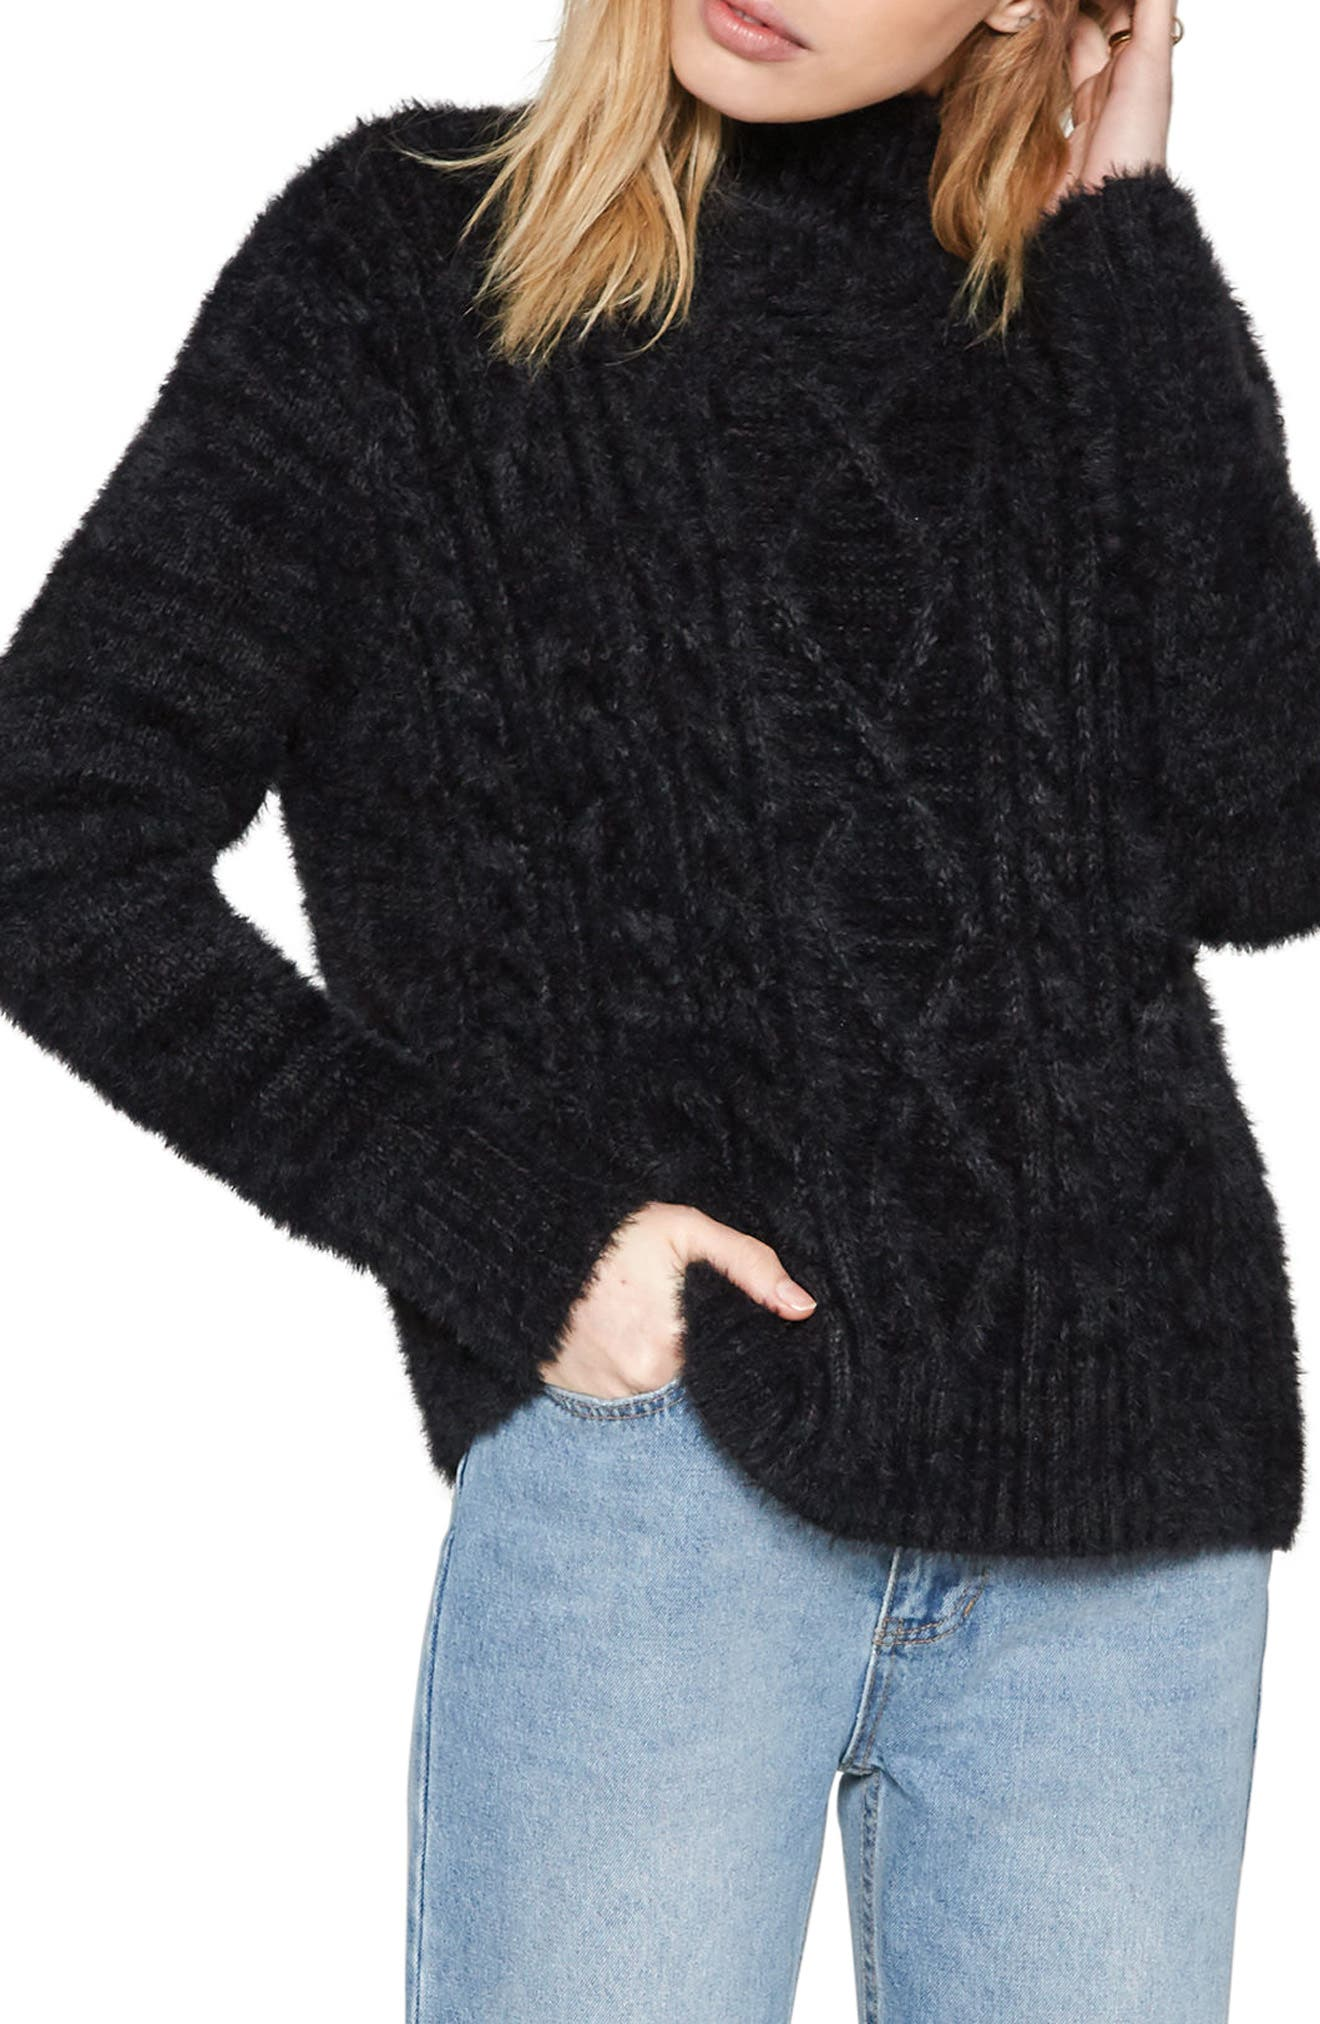 Cool Winds Cable Knit Sweater,                         Main,                         color, Black